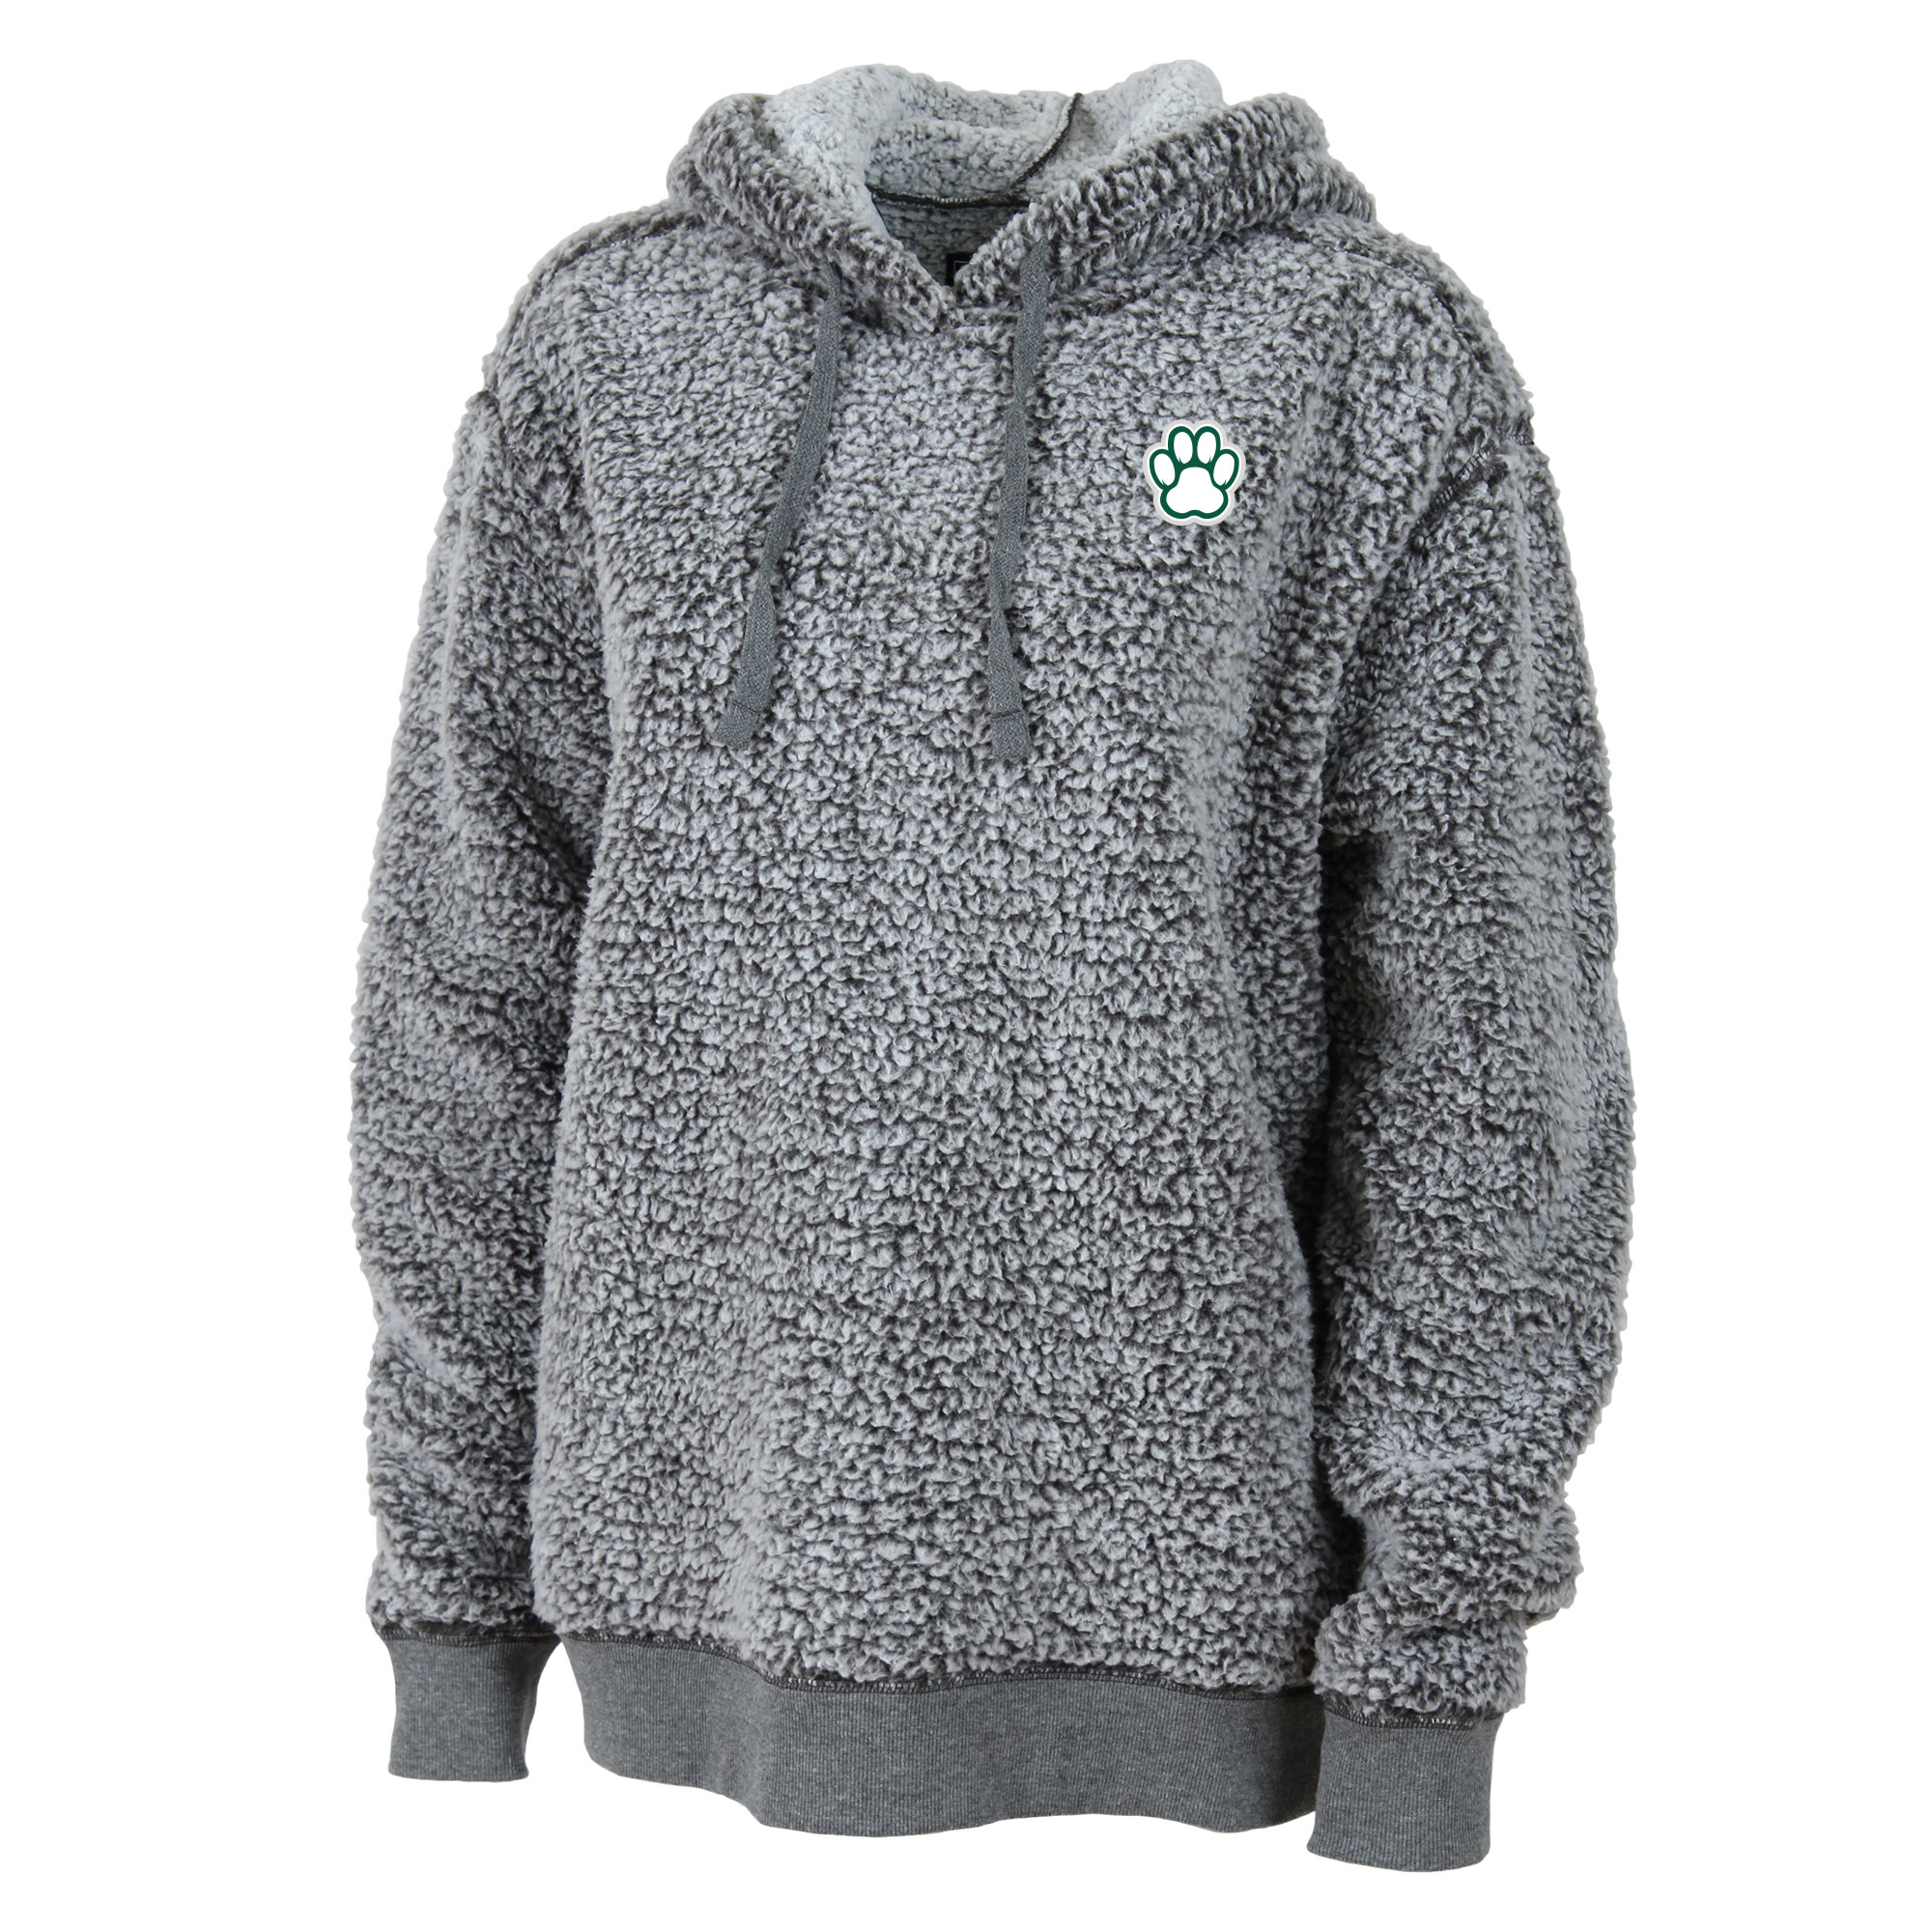 Boxercraft Pullover: Sherpa Hoodie - Frosty Gray